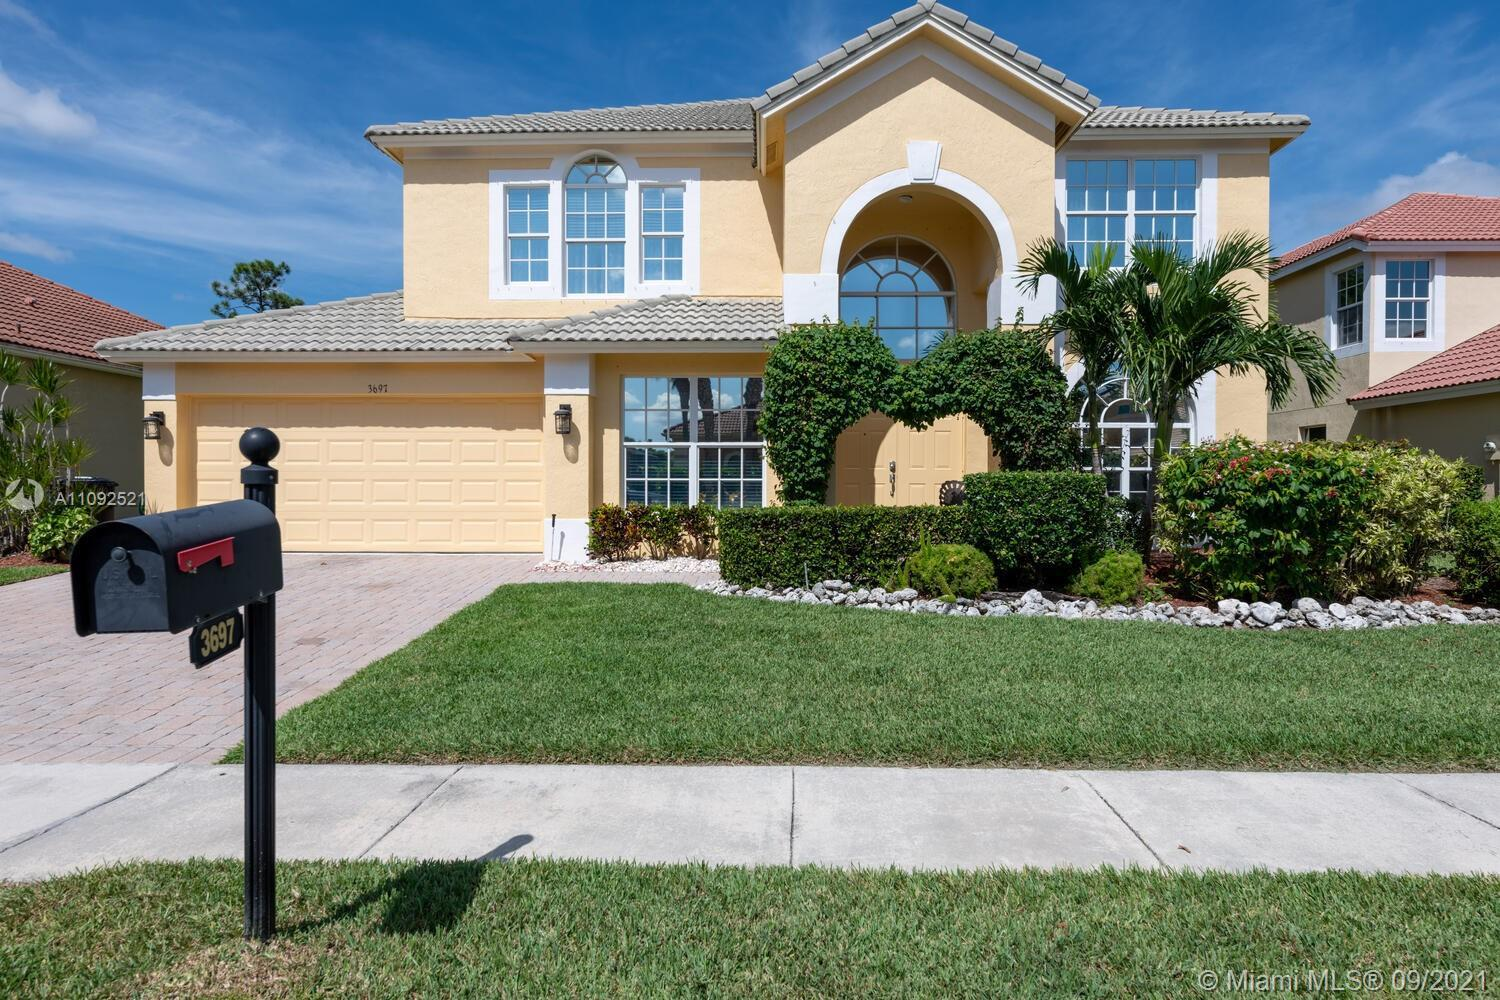 Located in Hamilton Bay, you'll want to make this spacious two-story 5BR/3BA/2-car garage plus a lof